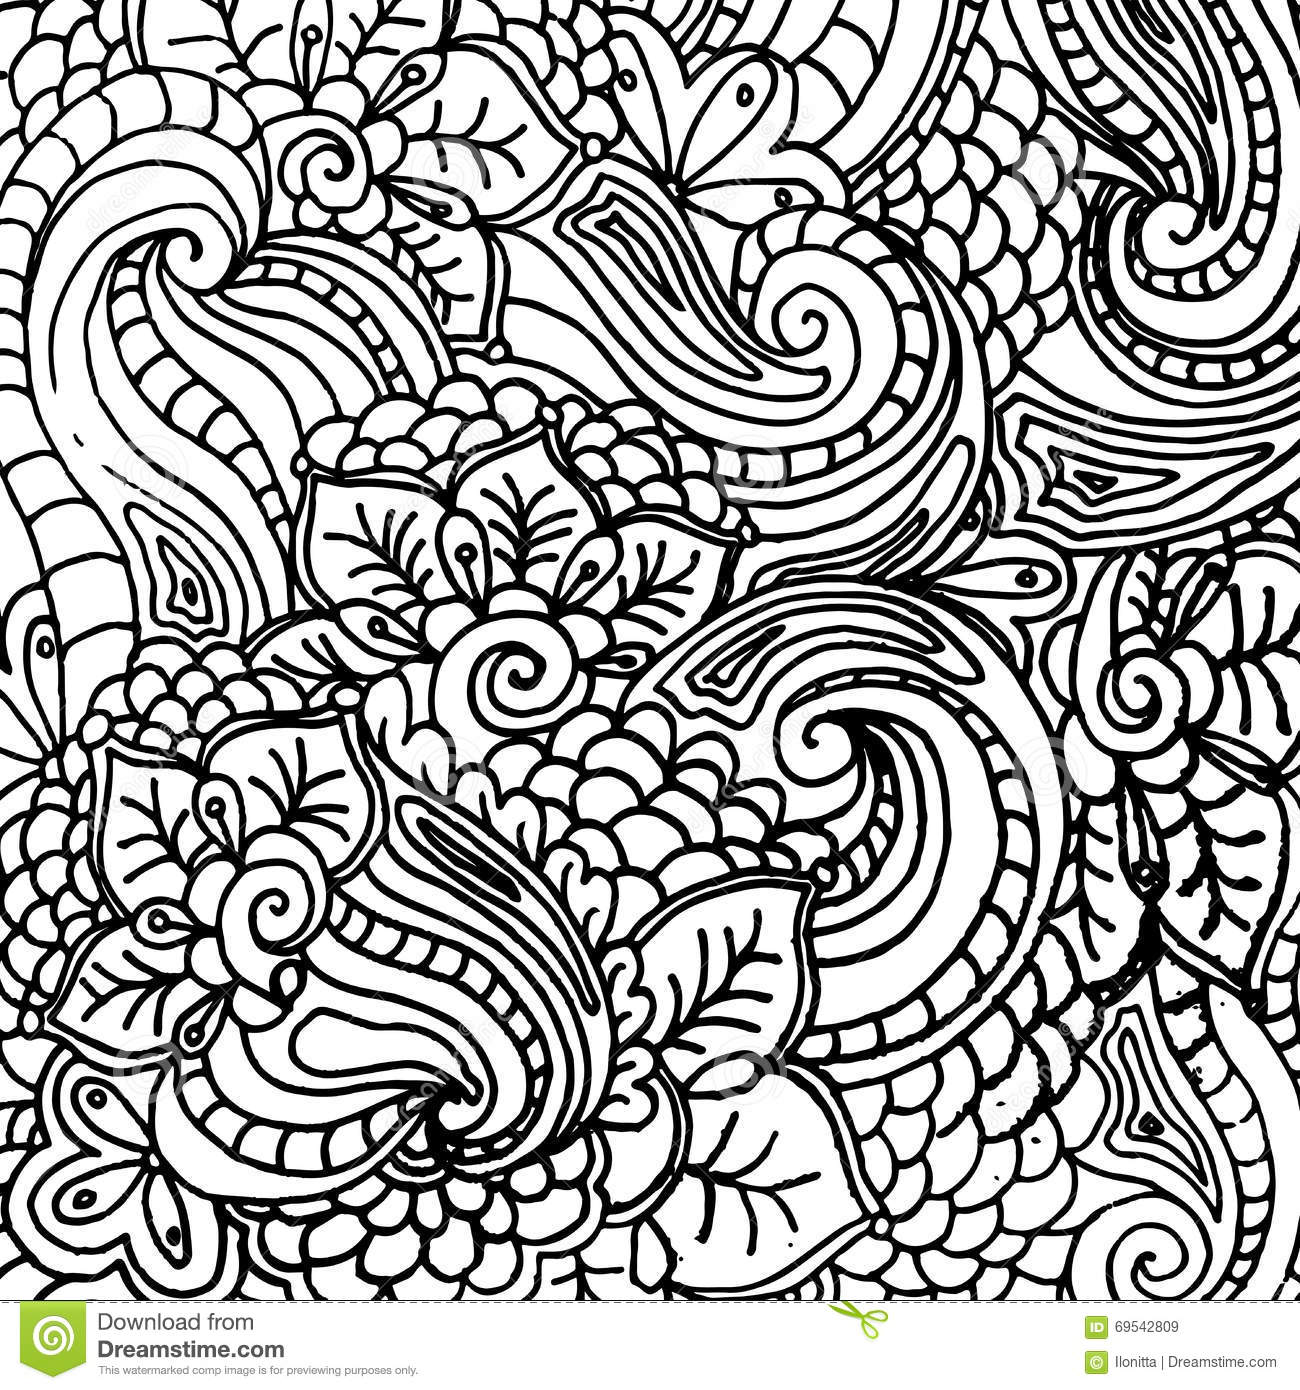 Royalty Free Vector Download Abstract Fantasy Pattern For Coloring Book